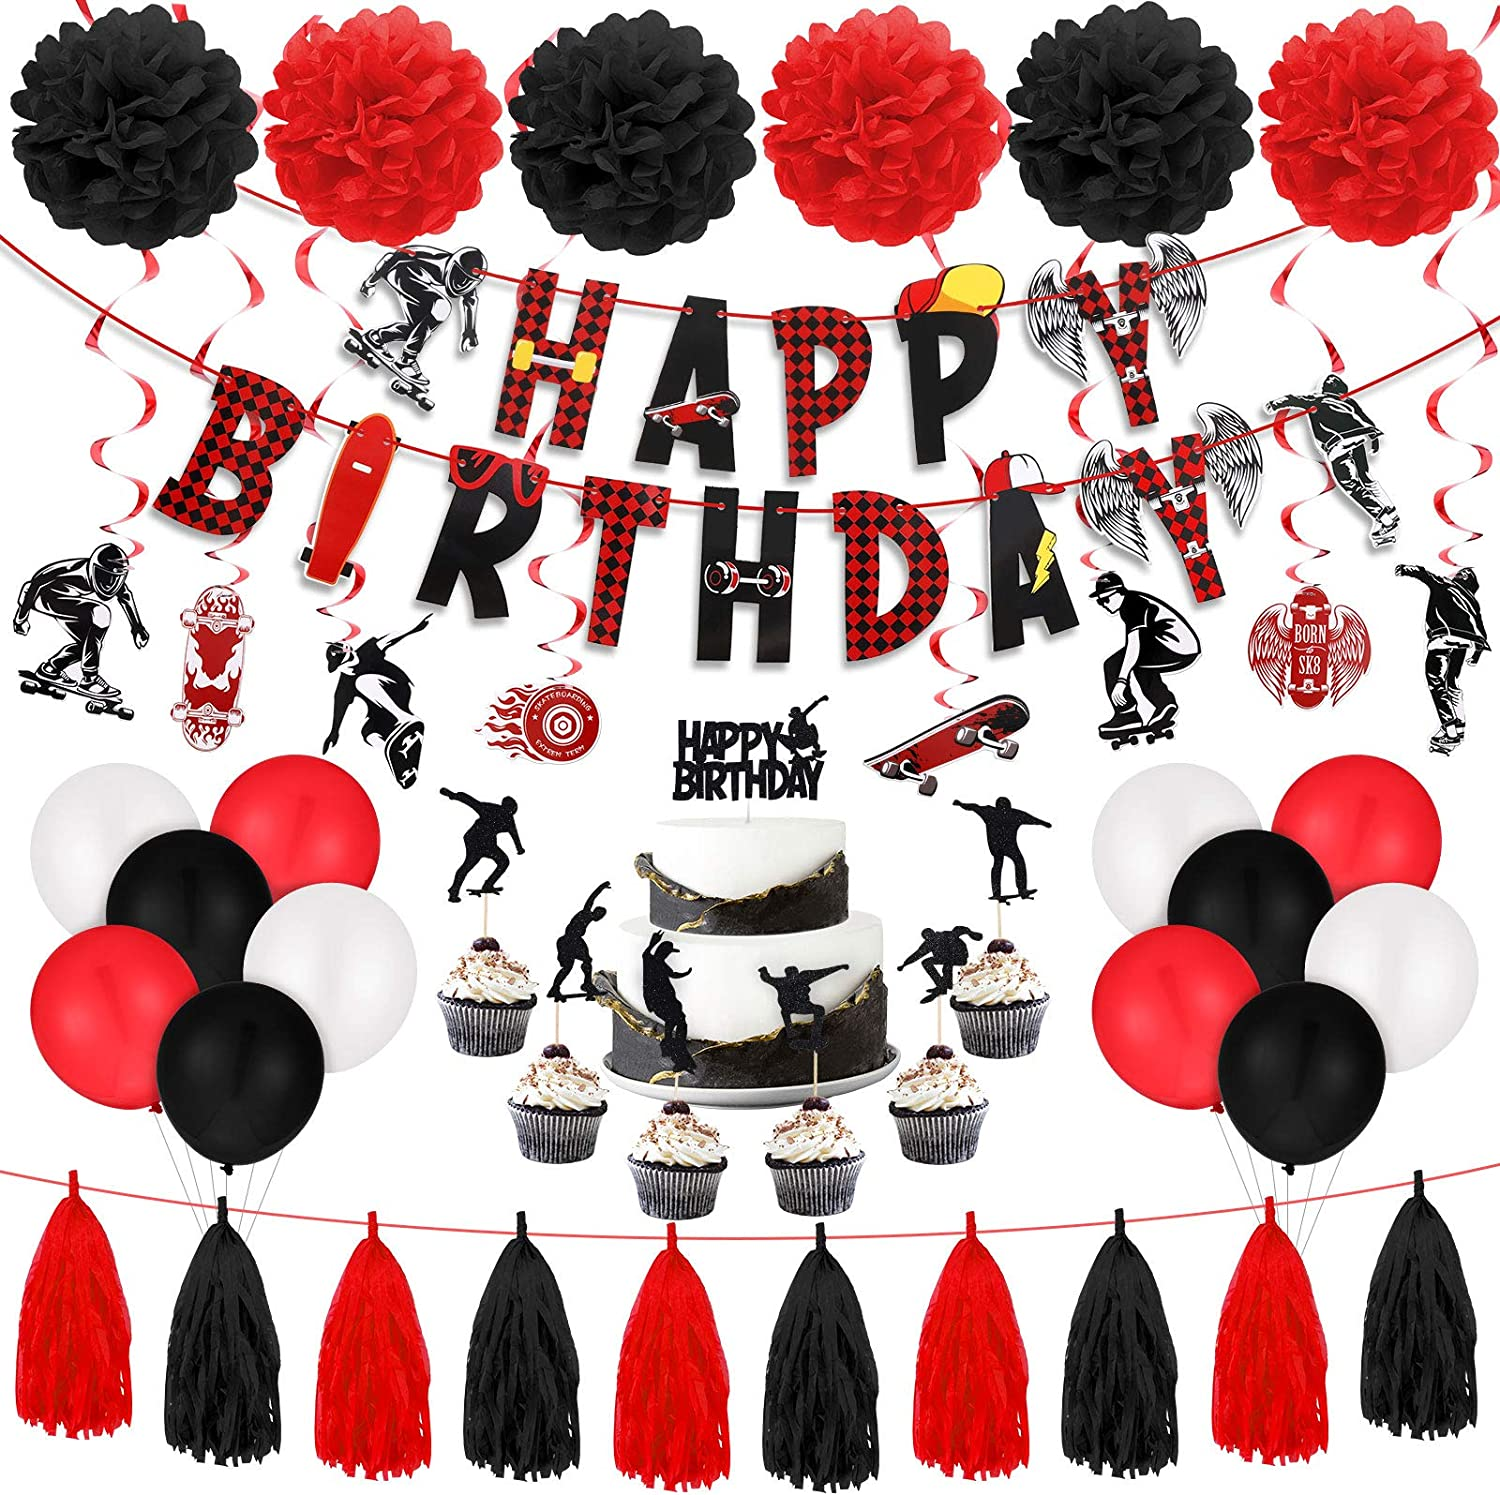 Skateboard Theme Birthday Party Supplies Decorations Include Skateboard Theme Birthday Banner Skateboard Theme Cake Toppers Latex Balloons Hanging Swirls Paper Pom Poms for Skater Birthday Party Decor